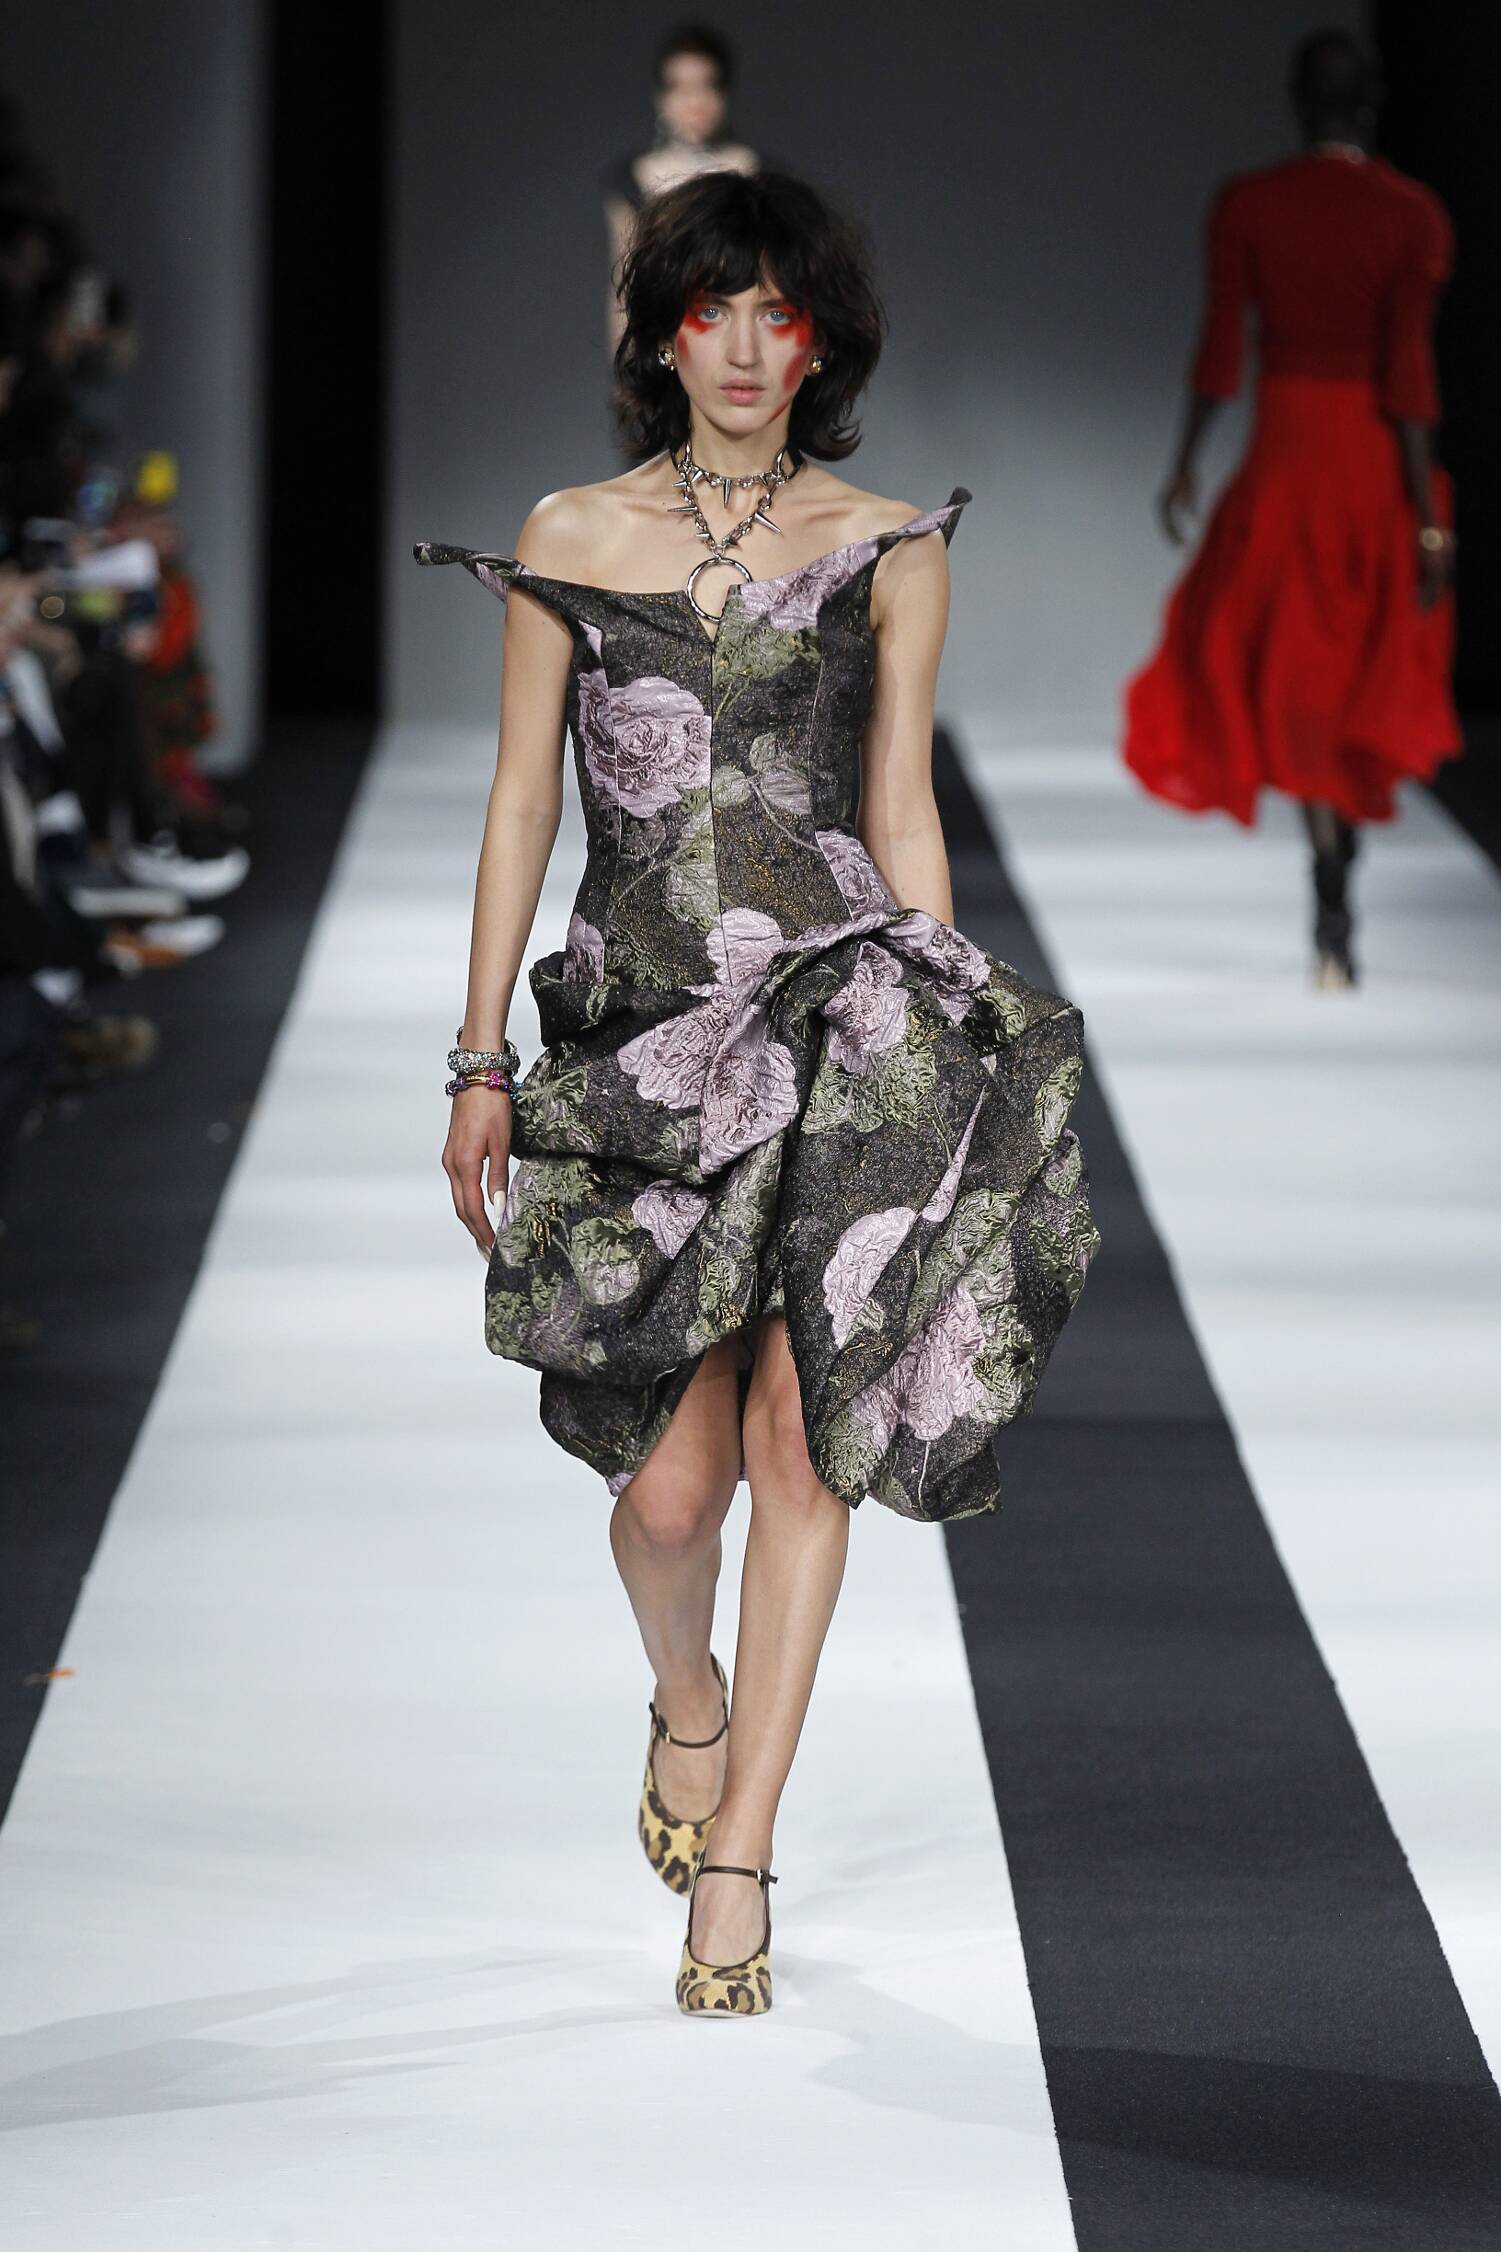 Catwalk Vivienne Westwood Red Label Fall Winter 2015 16 Women's Collection London Fashion Week